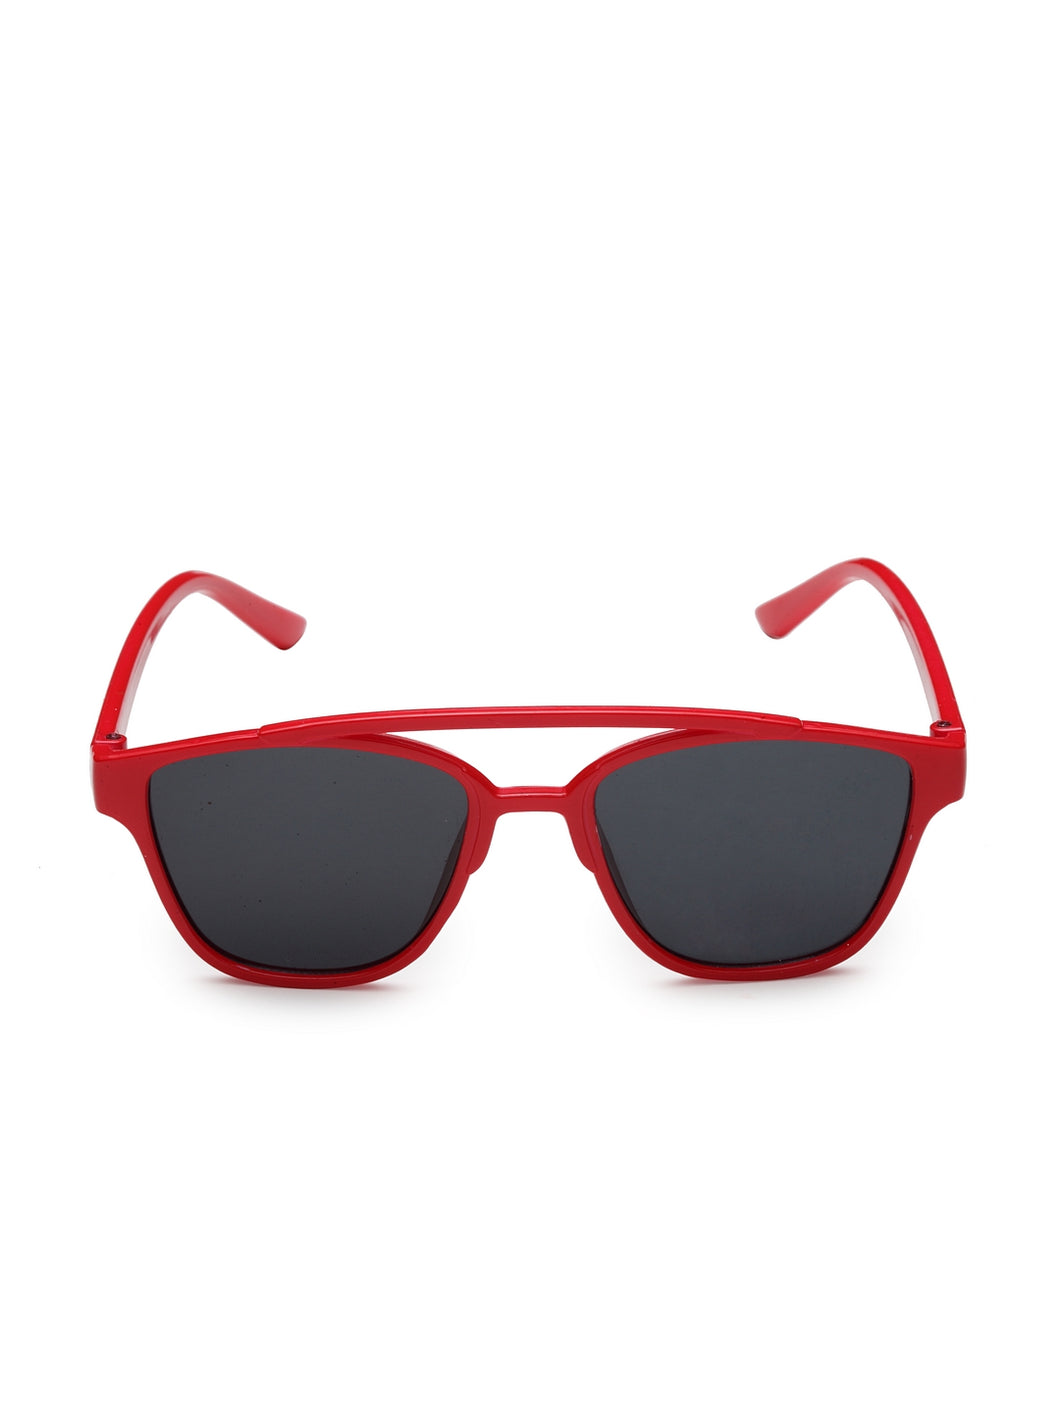 Stol'n Premium Attractive Fashionable UV-Protected Square Shape Sunglasses - Red